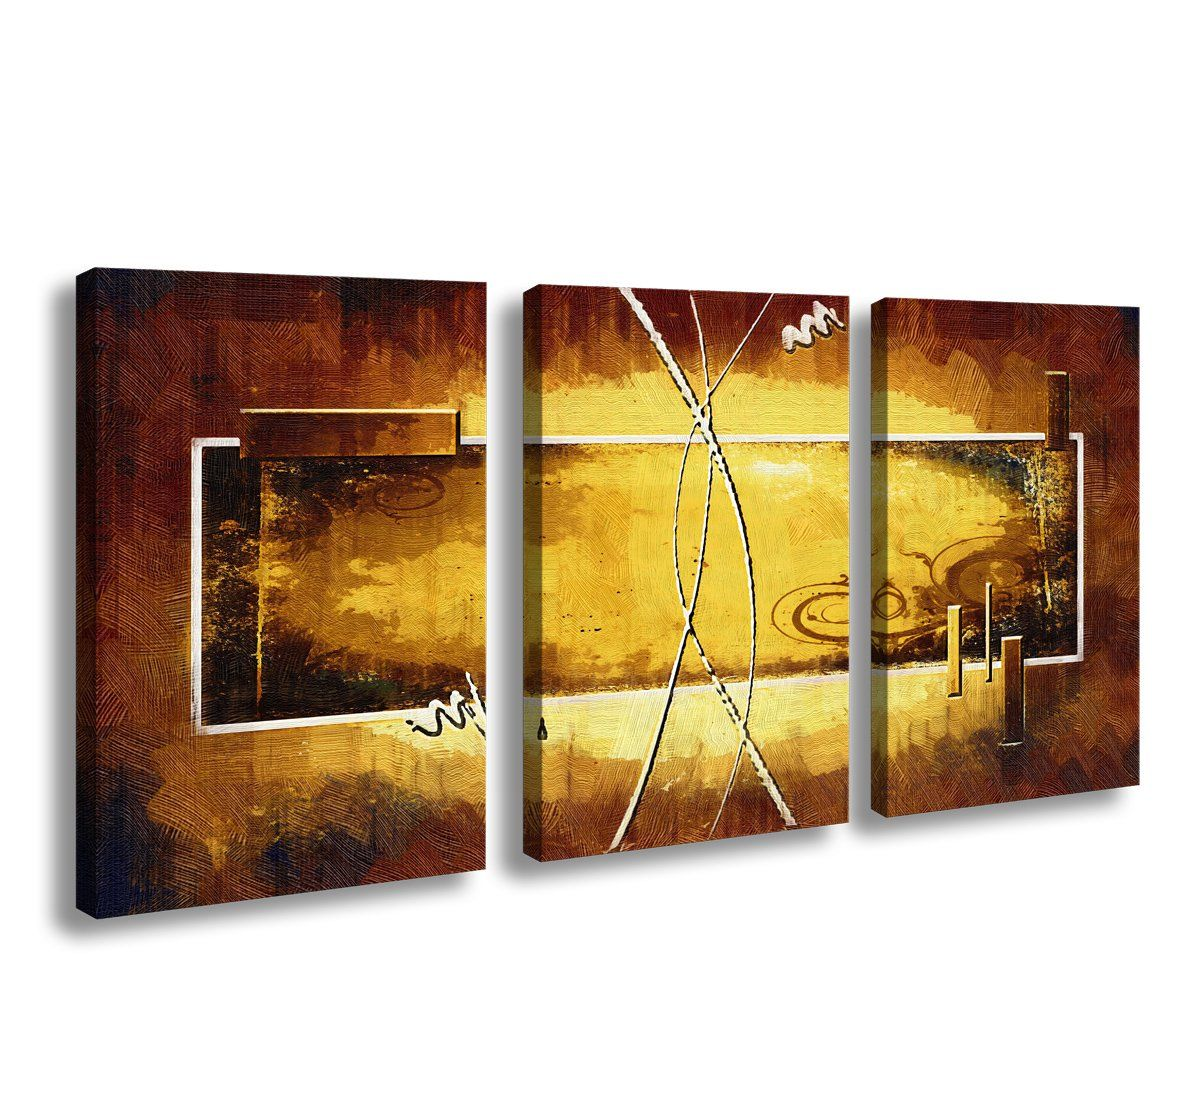 Magnificent Canvas Abstract Wall Art Photos - The Wall Art ...